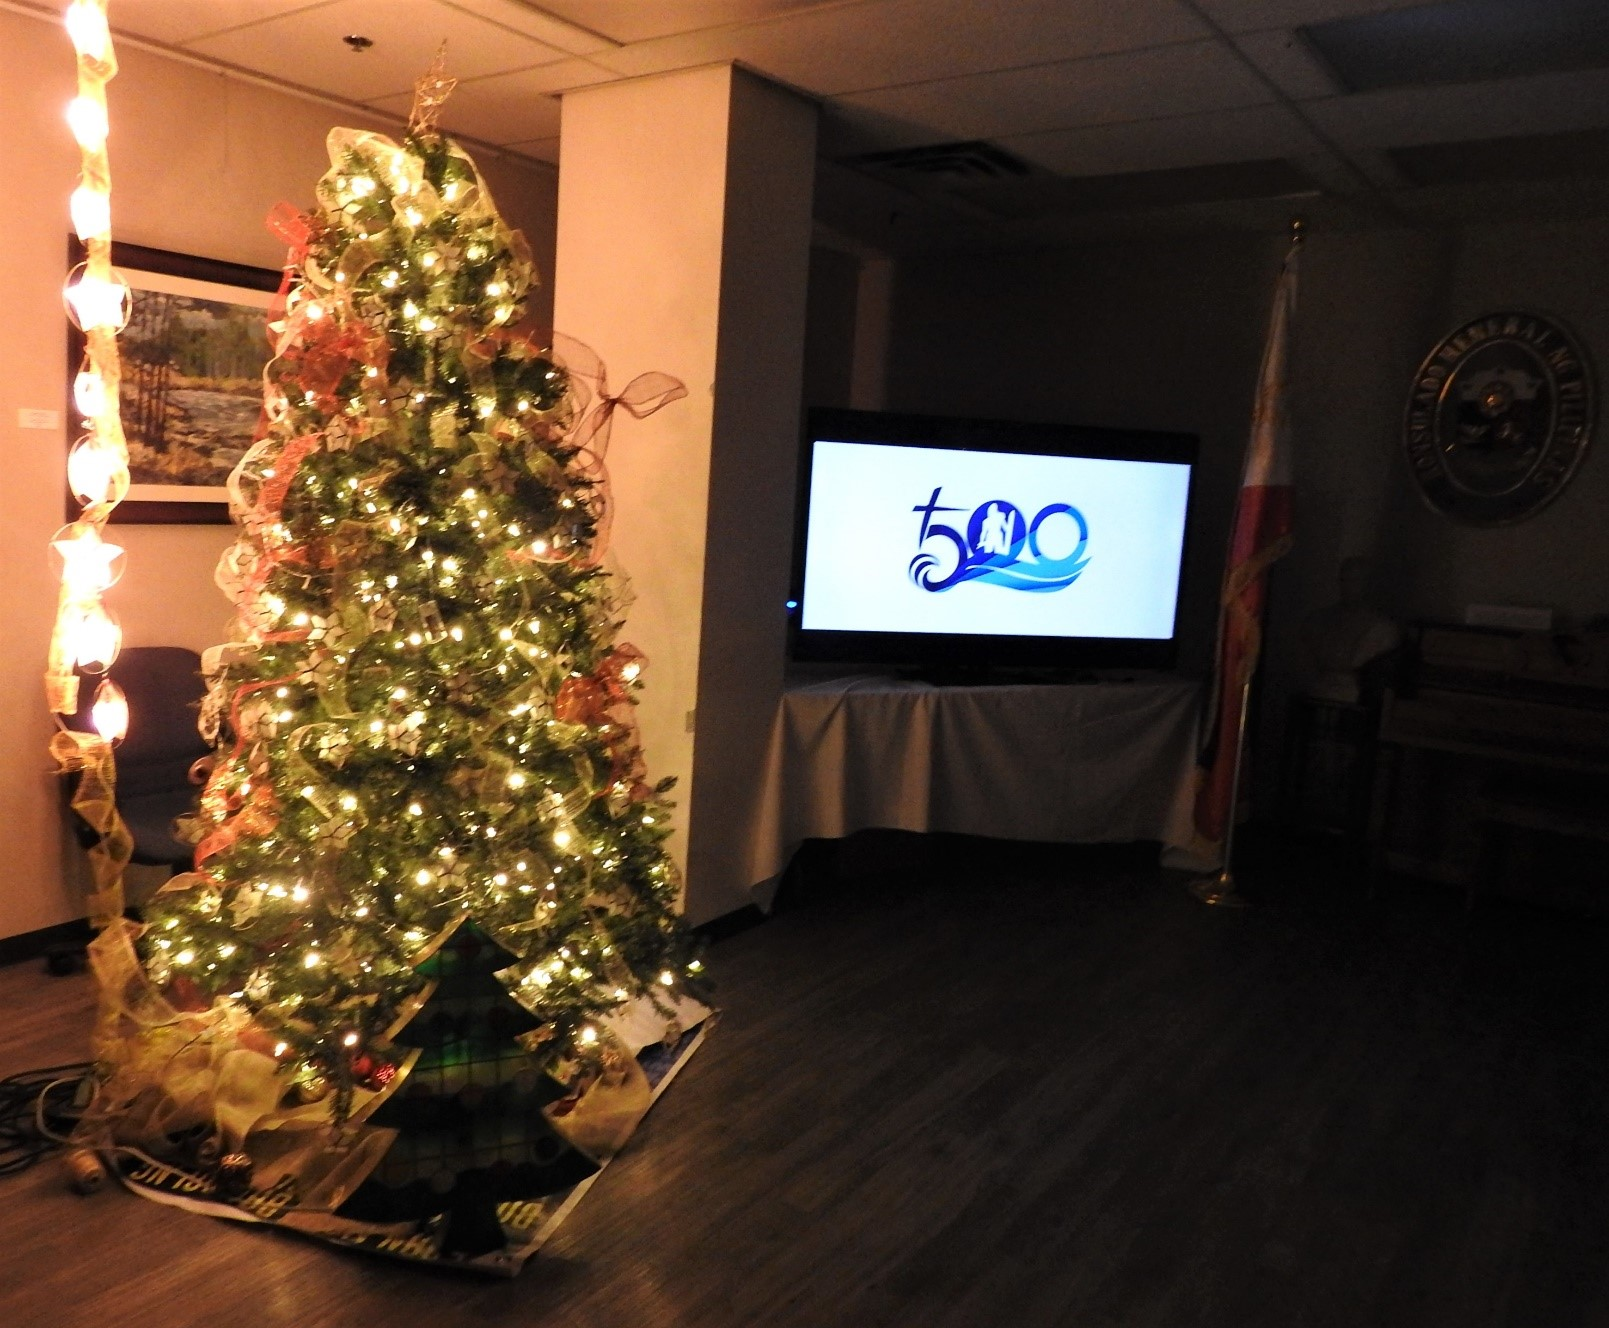 2021 Christmas In The Philippines Press Release The Philippine Consulate General Toronto Canada